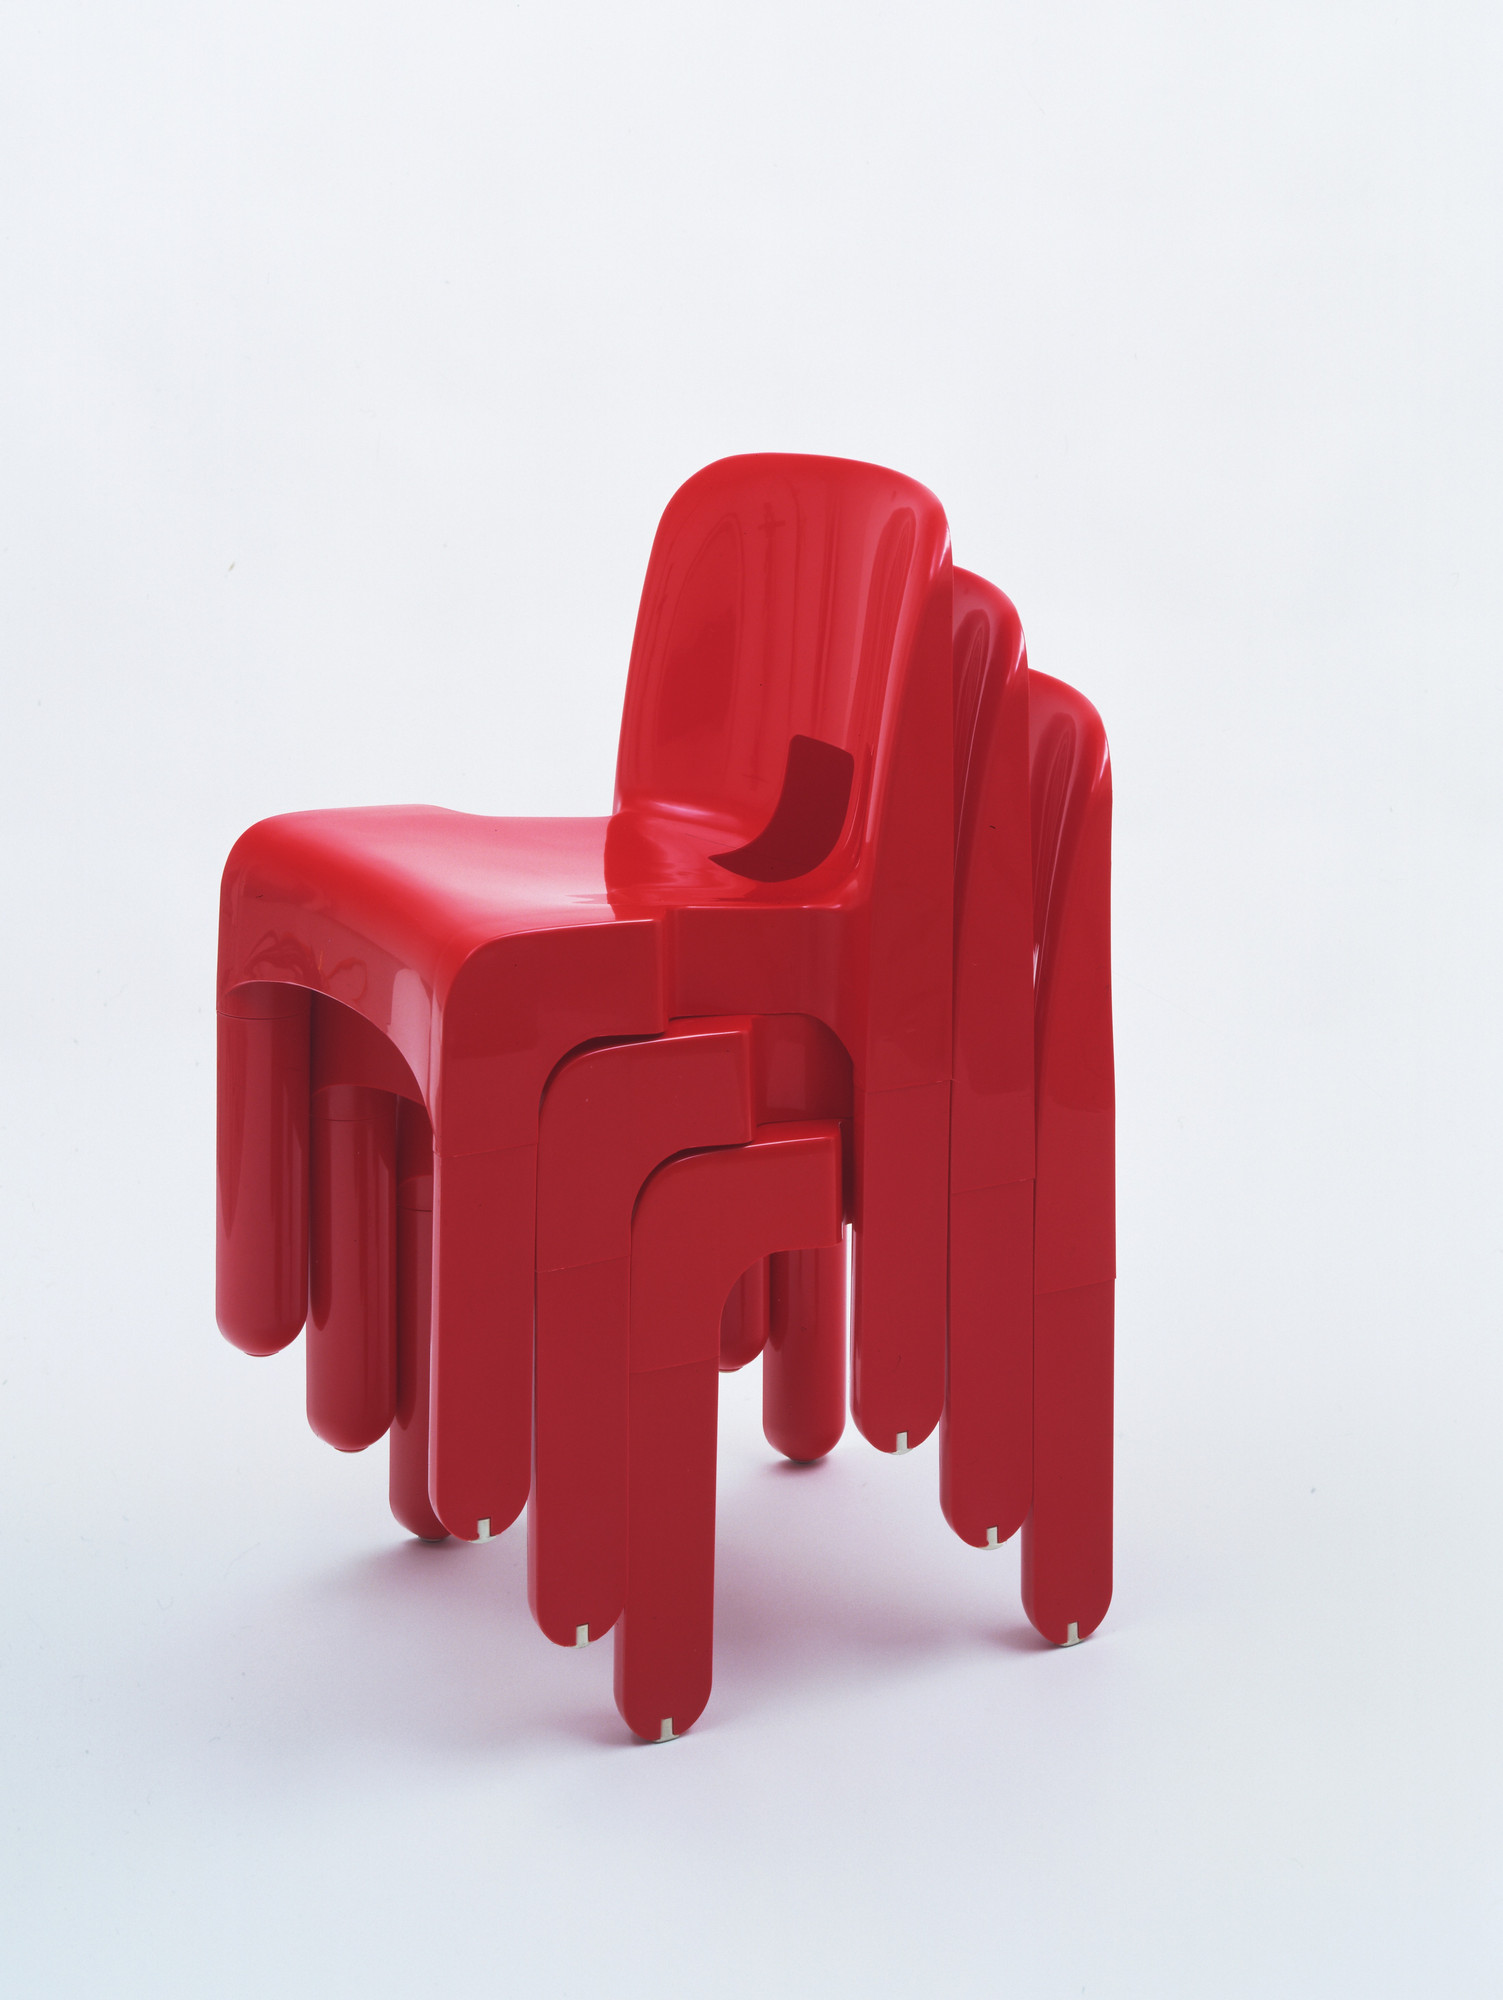 Joe Colombo. Universale stacking side chairs. 1967